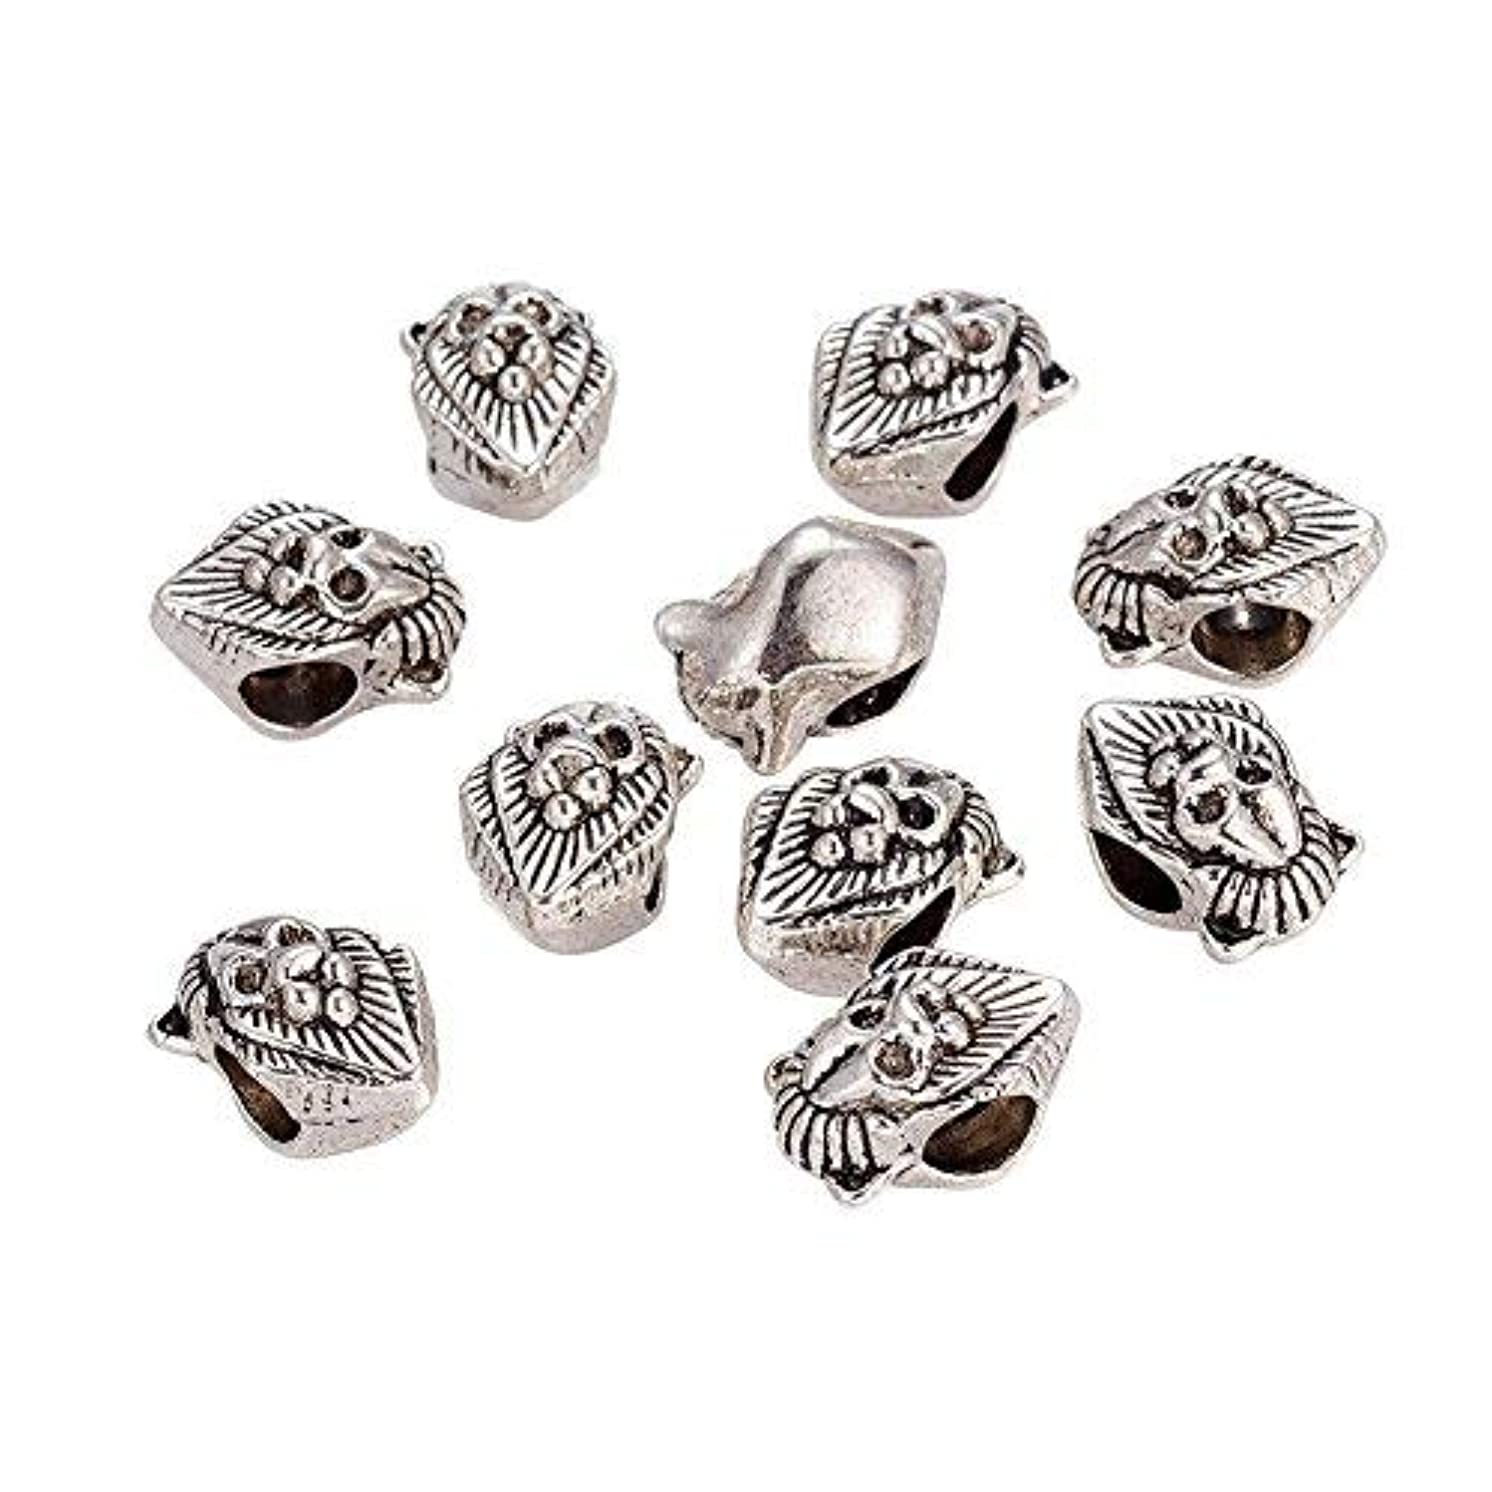 NBEADS 100 Pcs Antique Silver Lion Head Tibetan Style Alloy European Beads Large Hole Charms fit Bracelet Jewelry Making